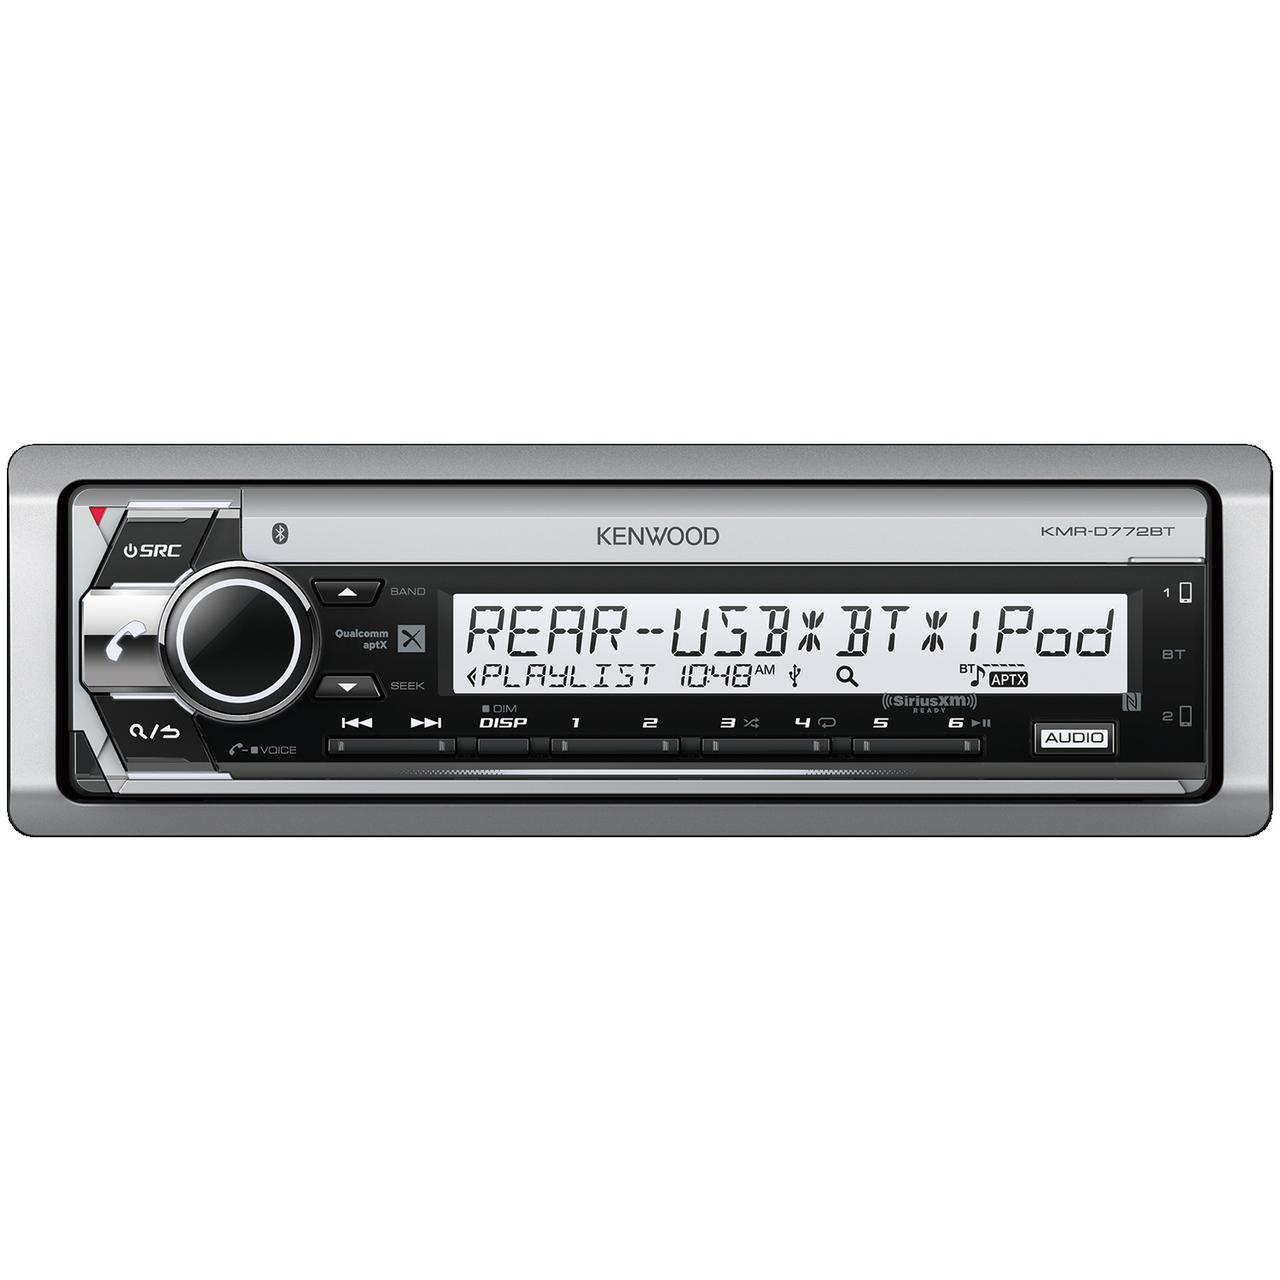 Kenwood KMR-D772BT Marine Single-Din In-Dash CD Receiver With Bluetooth & SiriusXM Ready